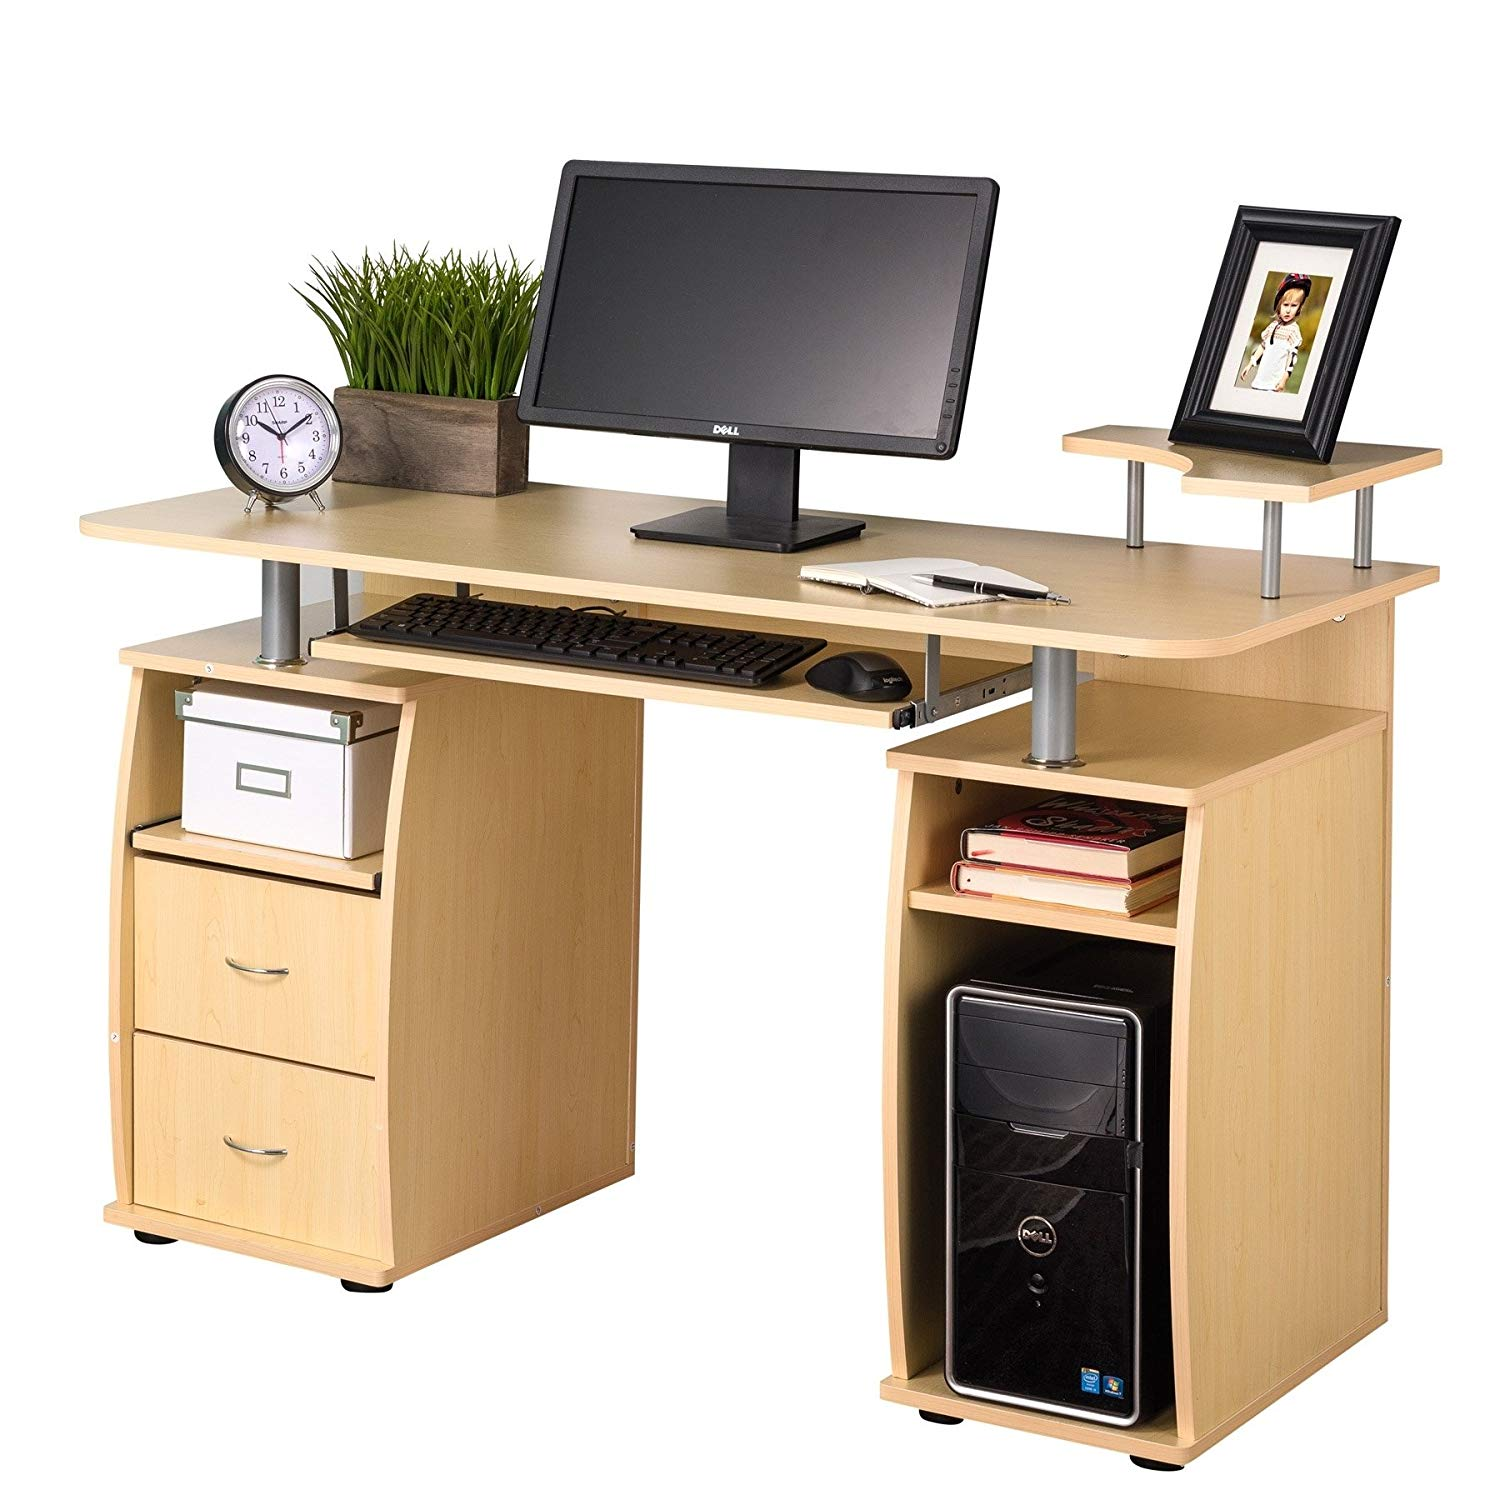 MyEasyShopping Fineboard Home Office Computer Desk - Black Chair Office Desk Computer Ergonomic